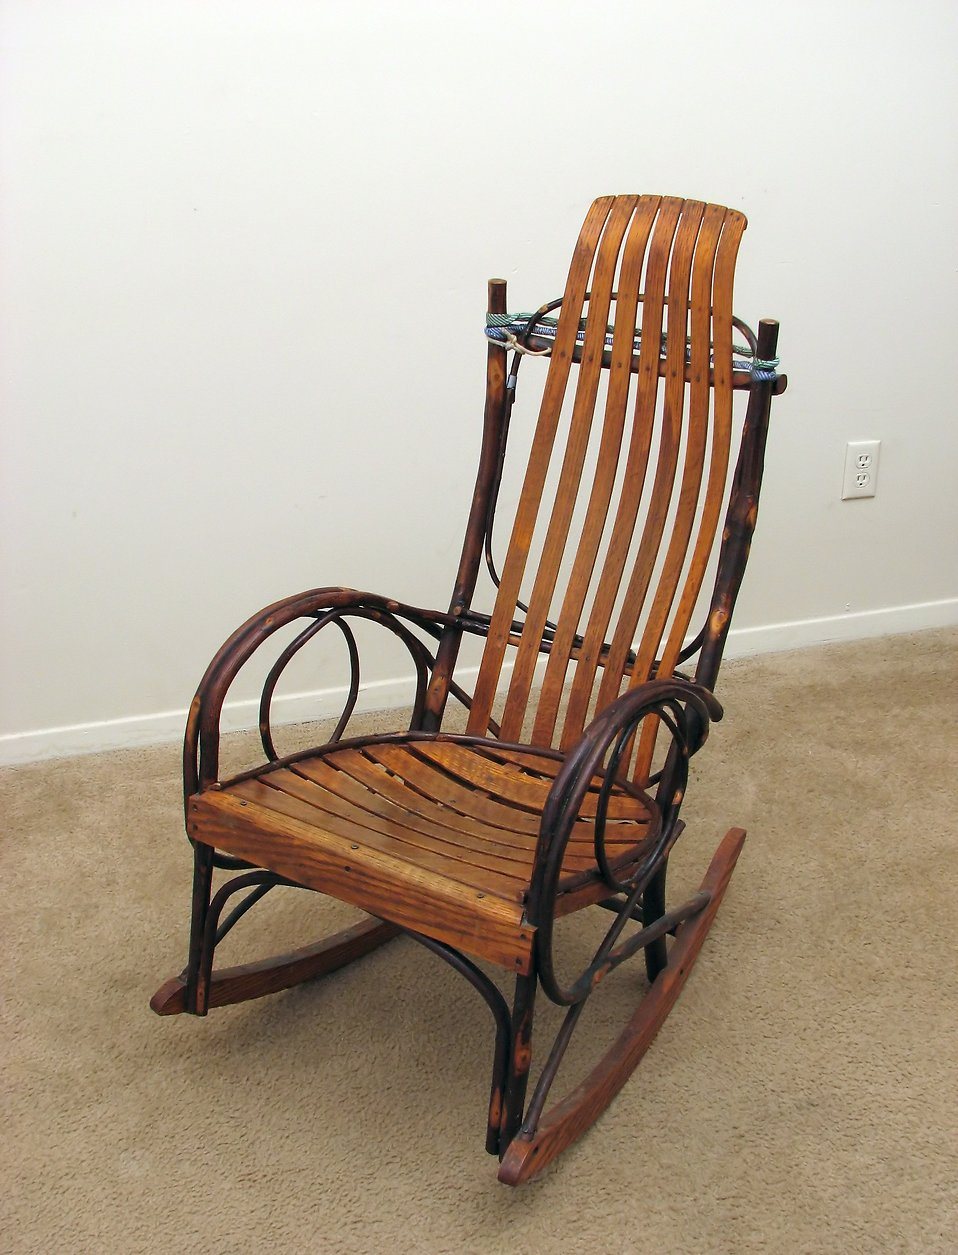 rocking chair free stock photo an old wooden rocking chair